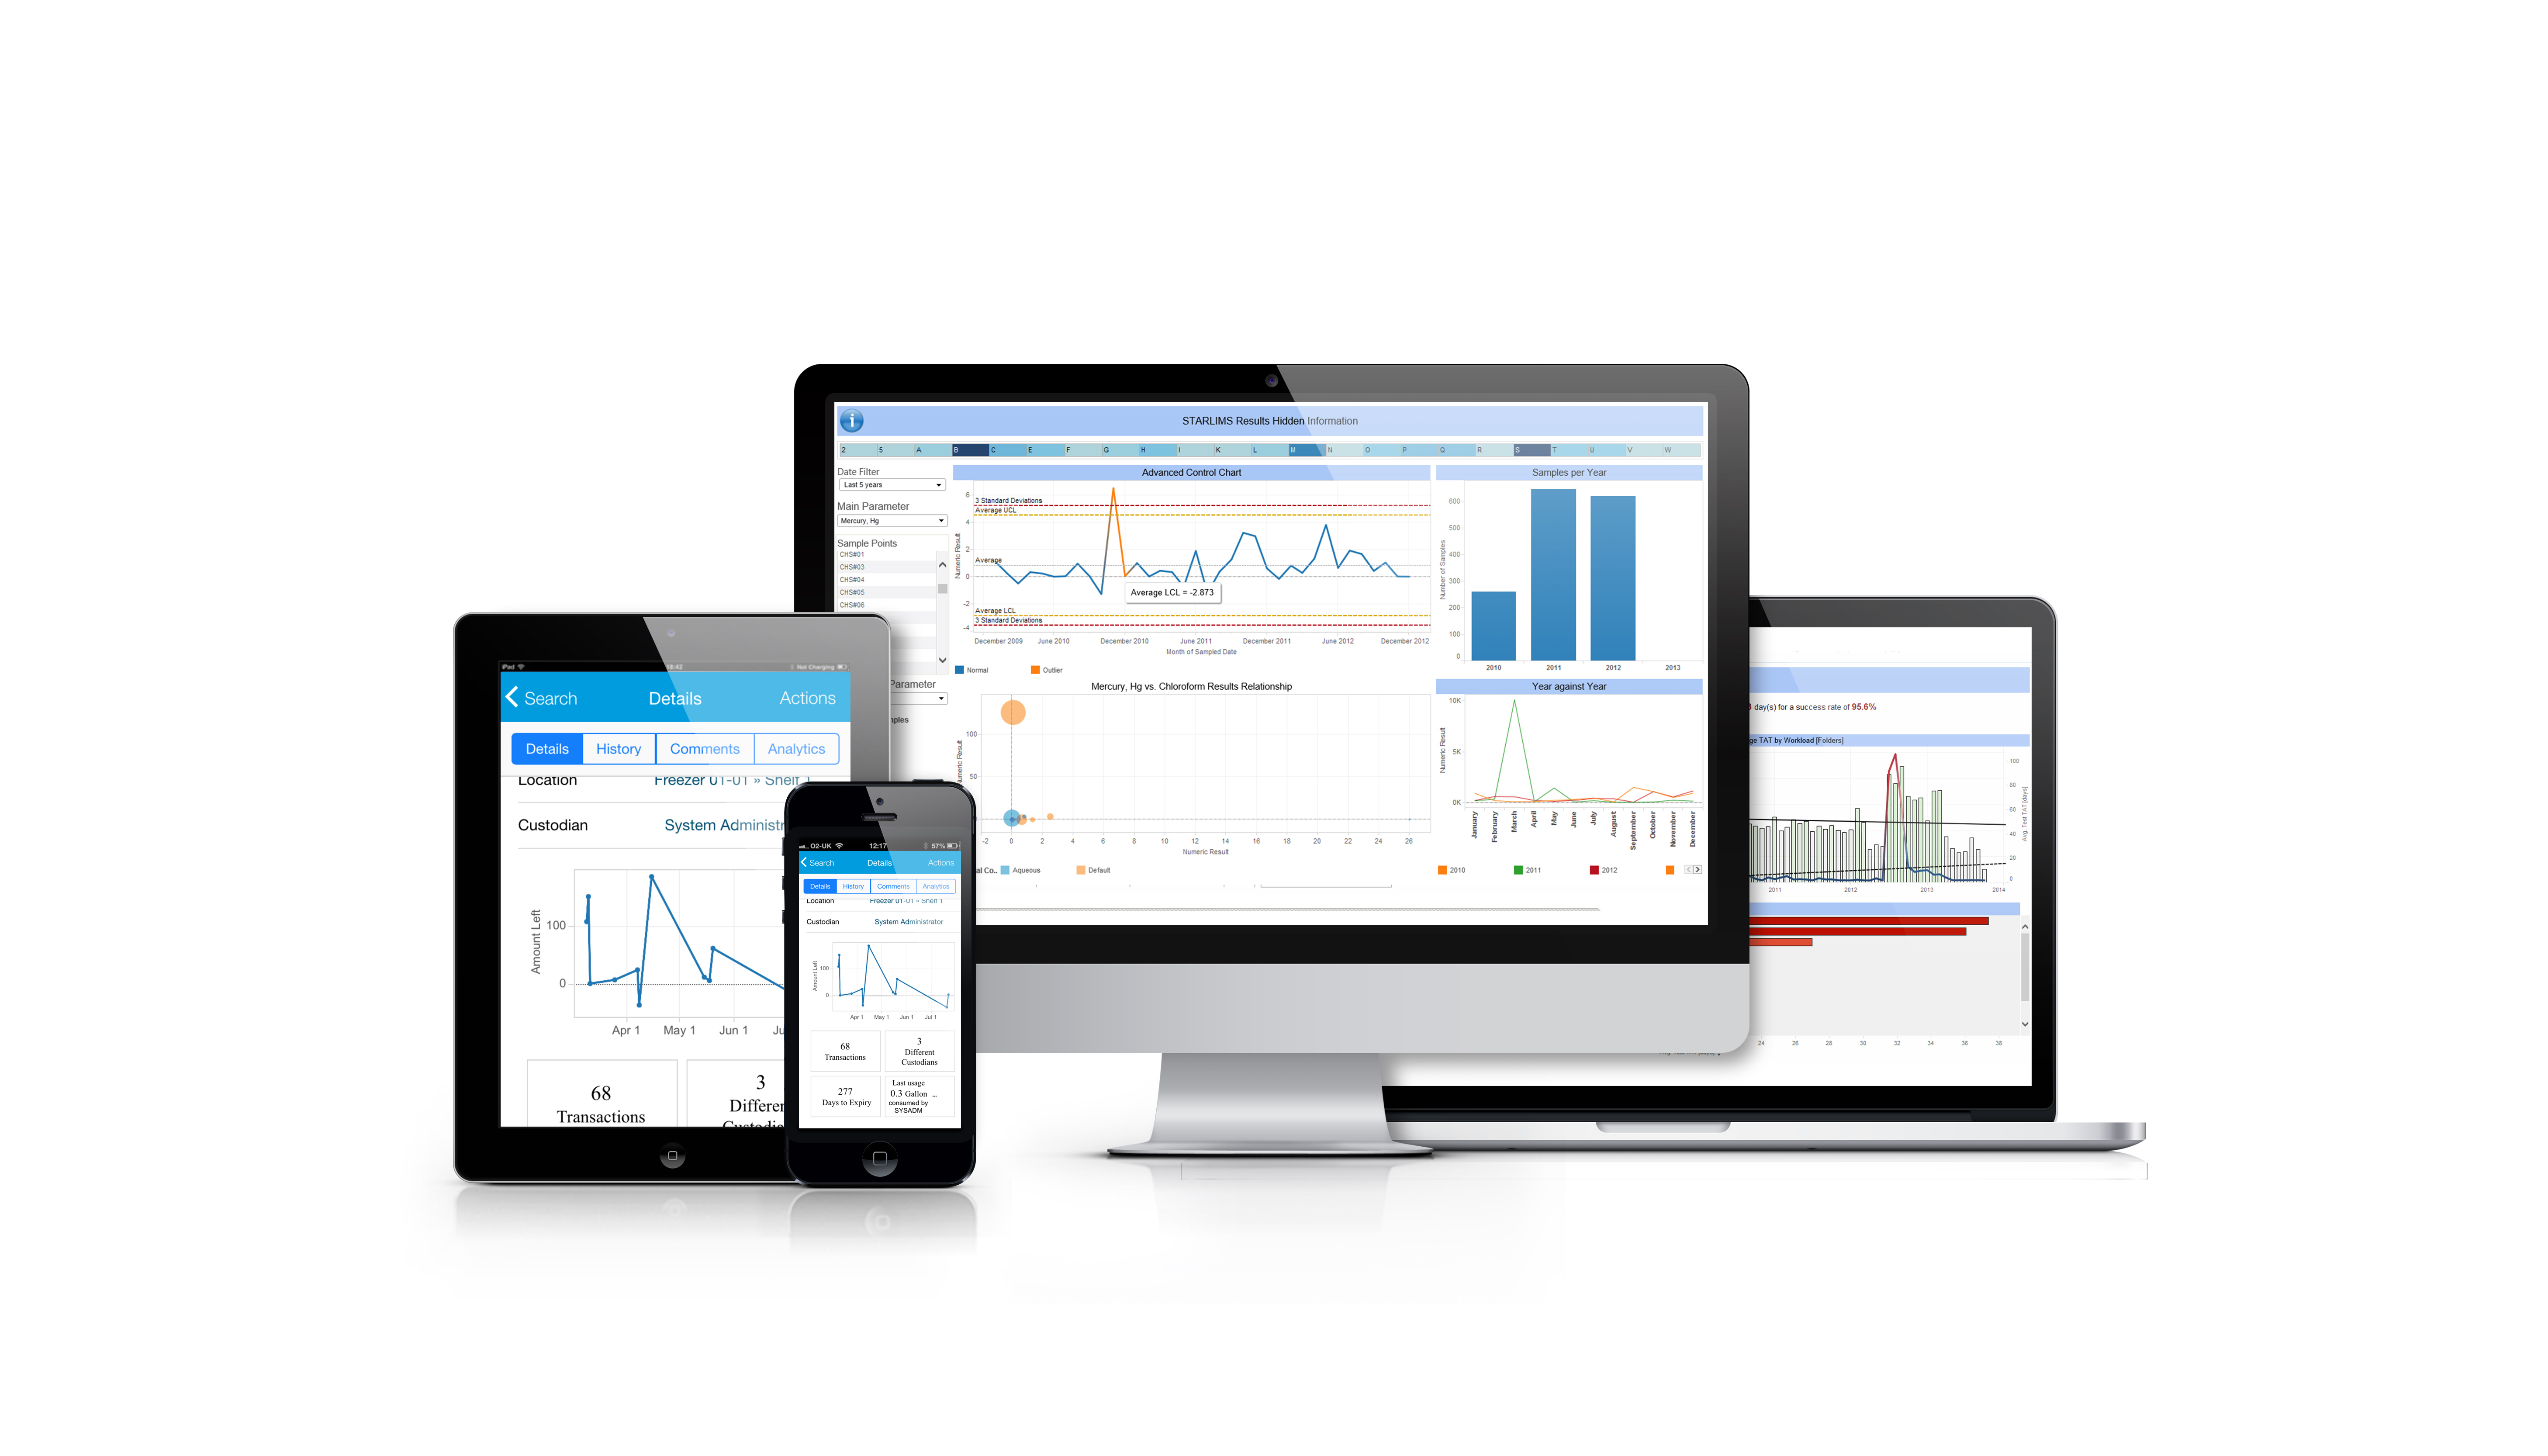 STARLIMS Demo - STARLIMS Mobile and Advanced Analytics dashboards